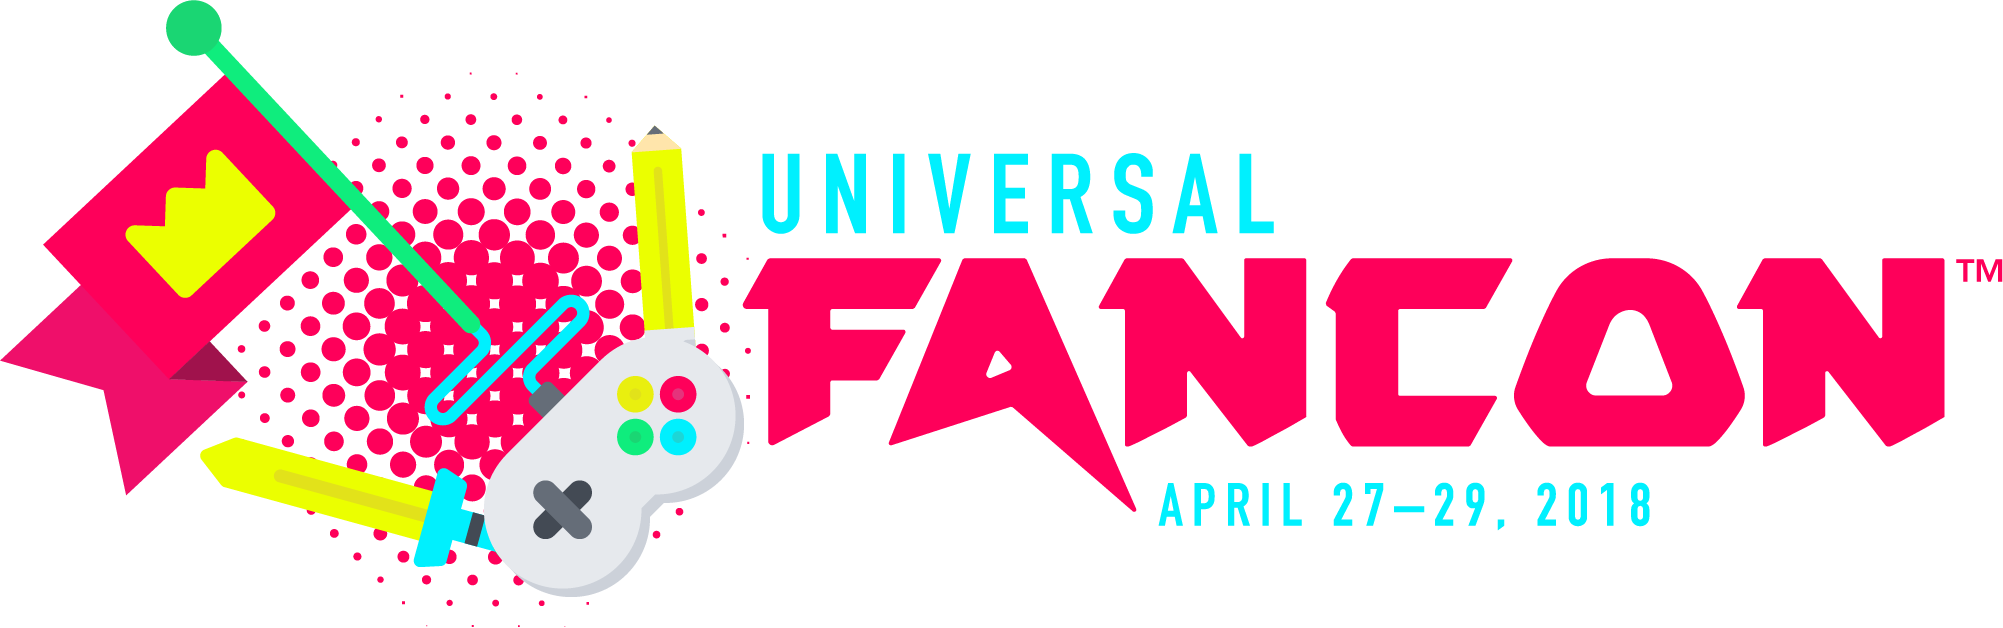 Tickets for Universal FanCon Autographs 2018 in Baltimore from ShowClix